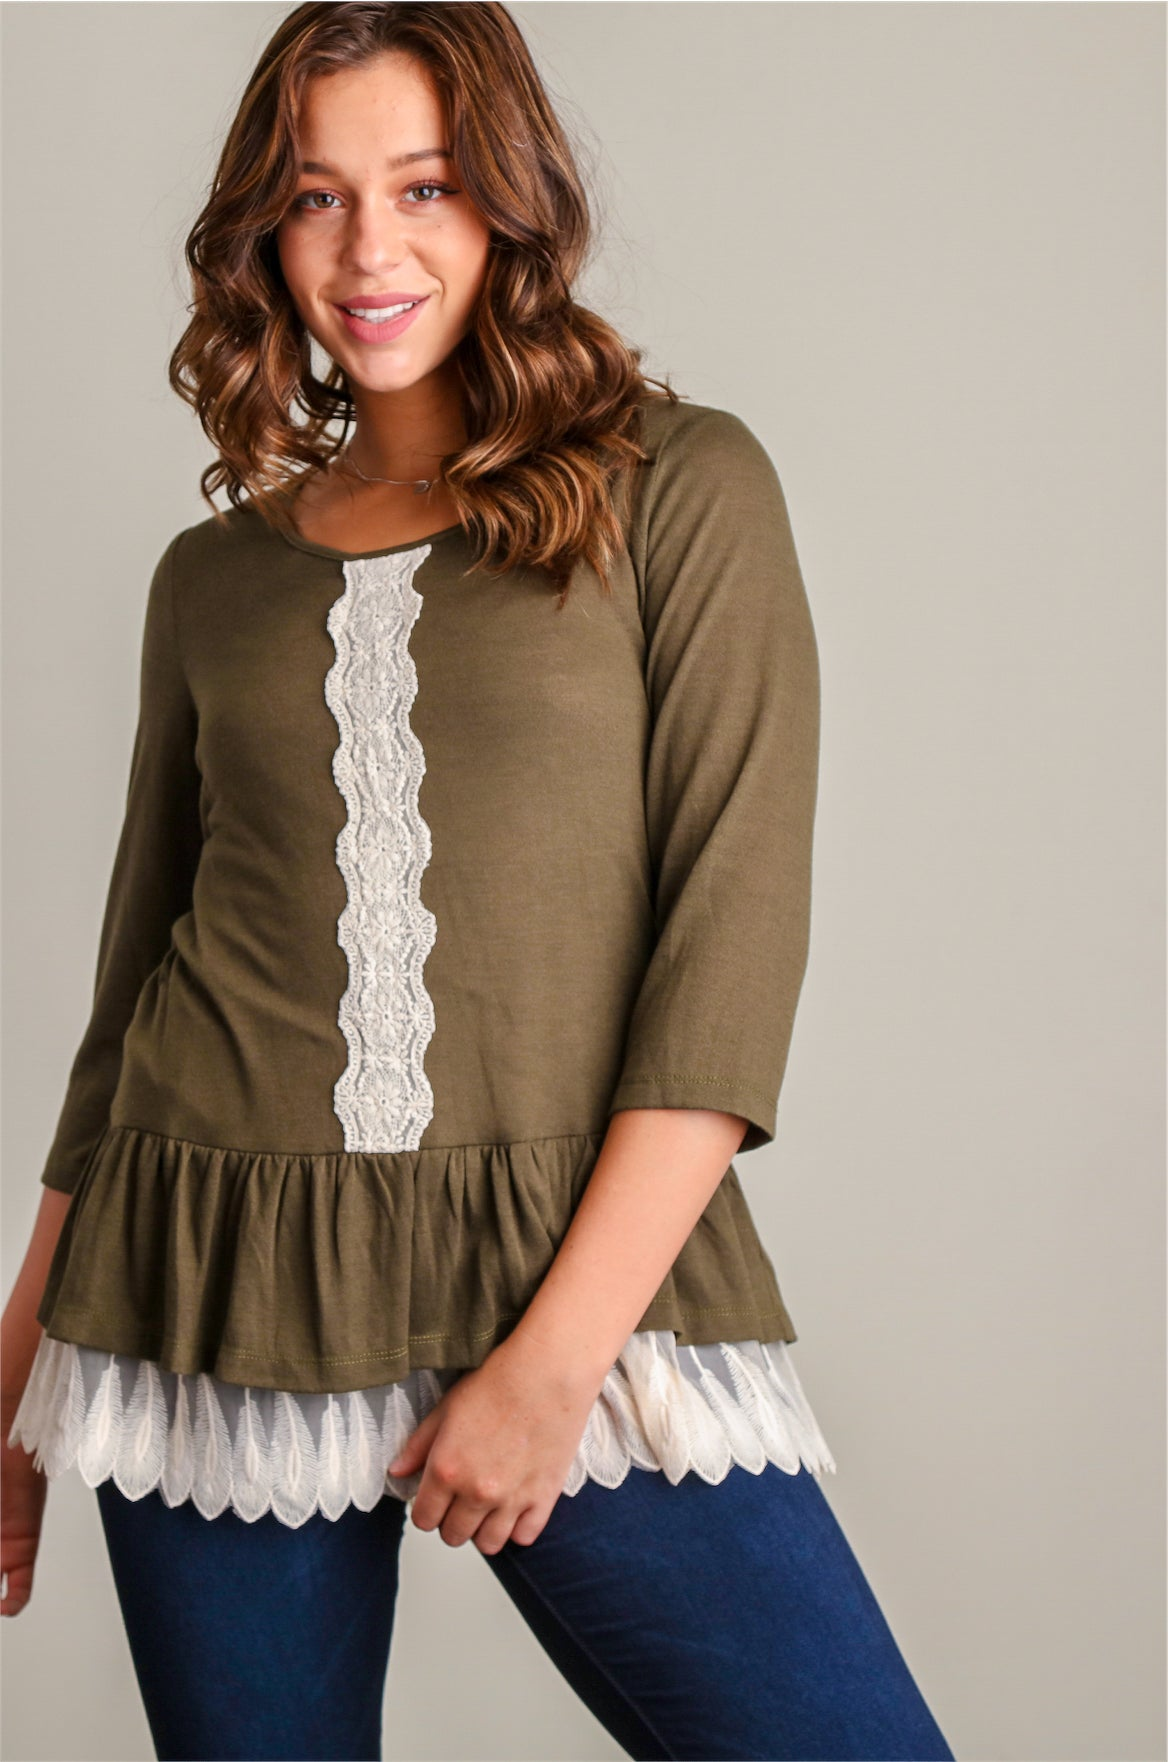 Olive Light Sweater Knit w/ Crochet